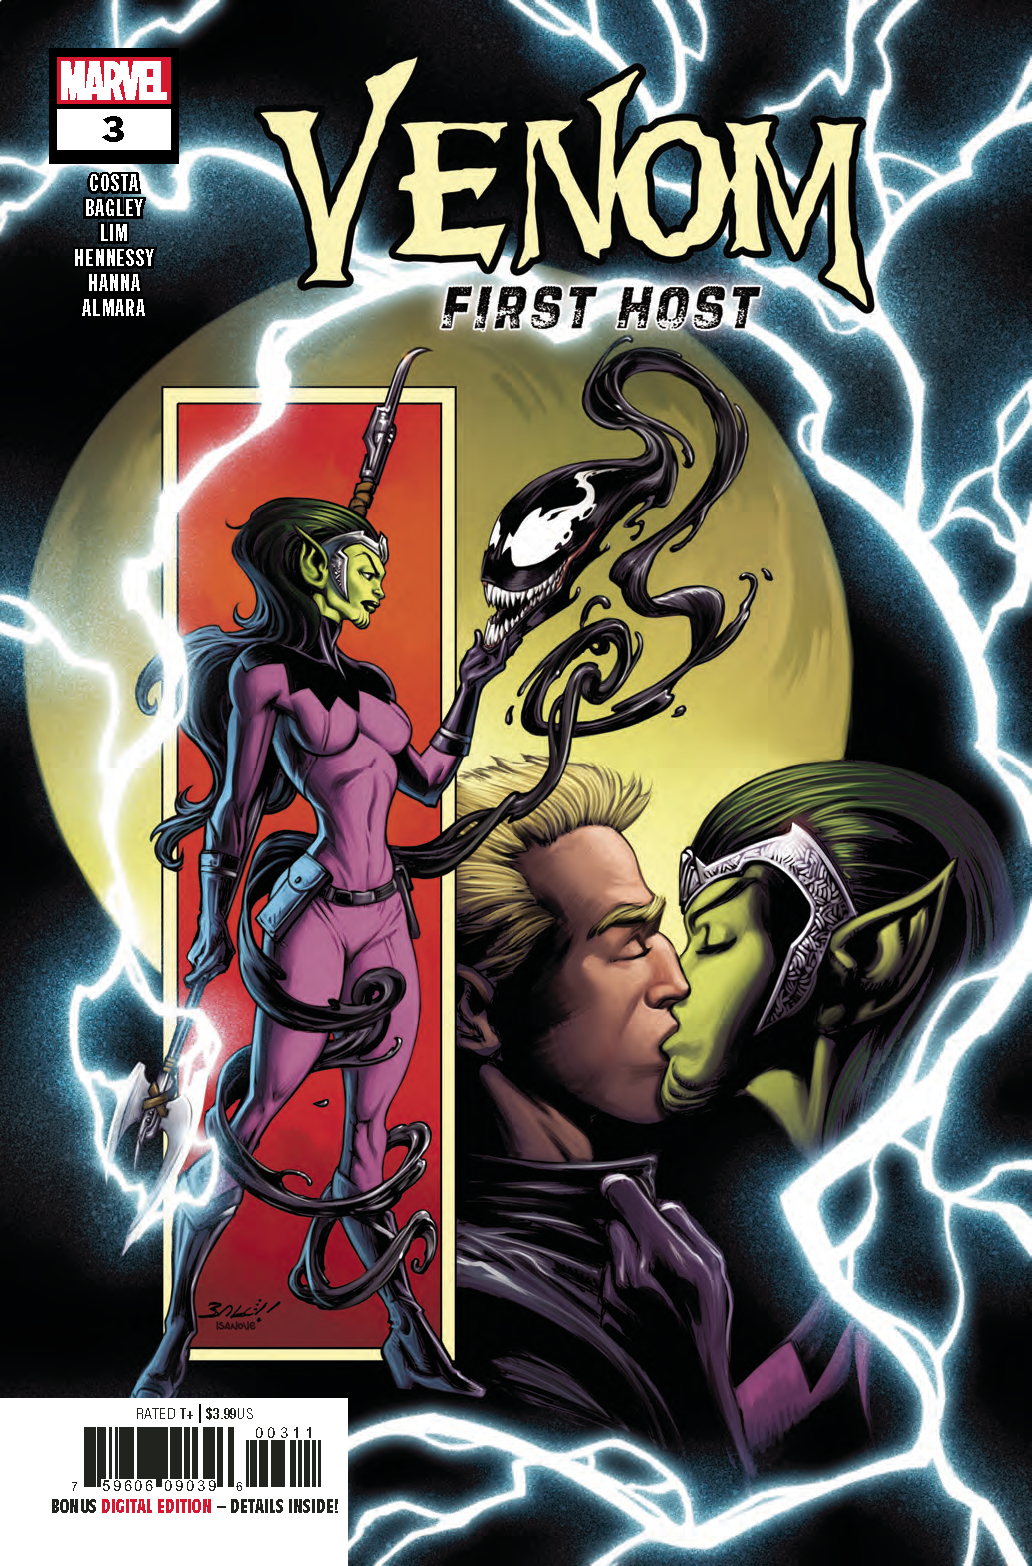 VENOM FIRST HOST #3 (OF 5)